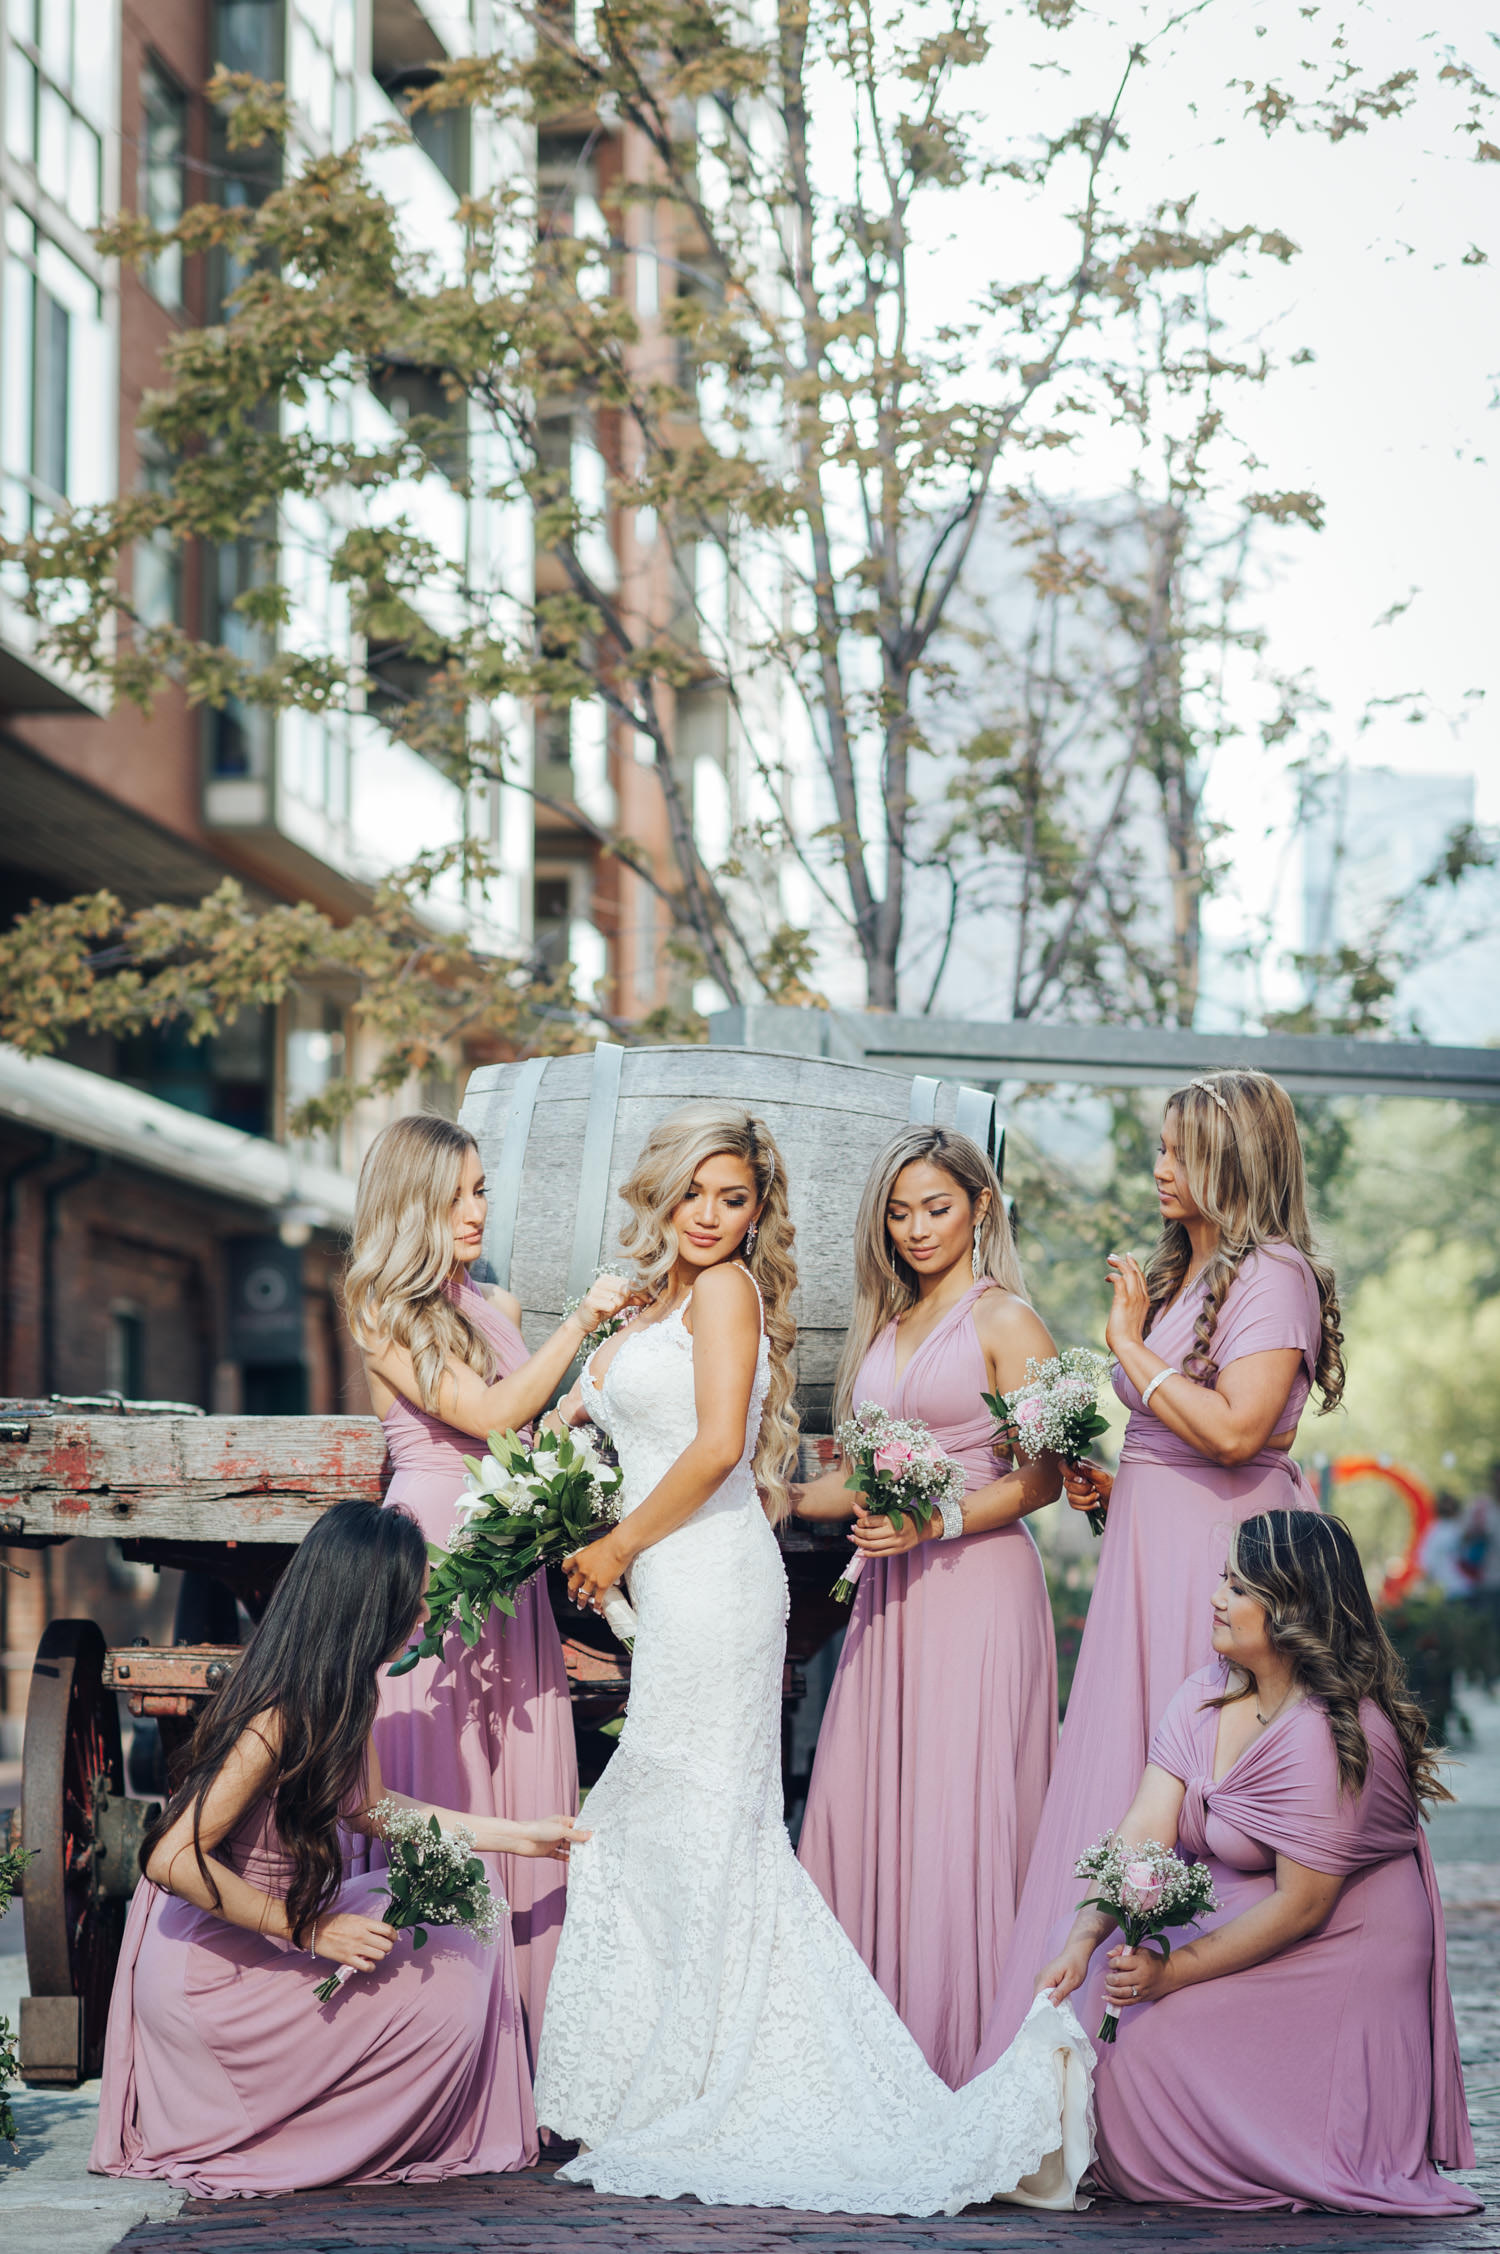 Wedding at the Distillery District featuring Cute Bridesmaids Photos